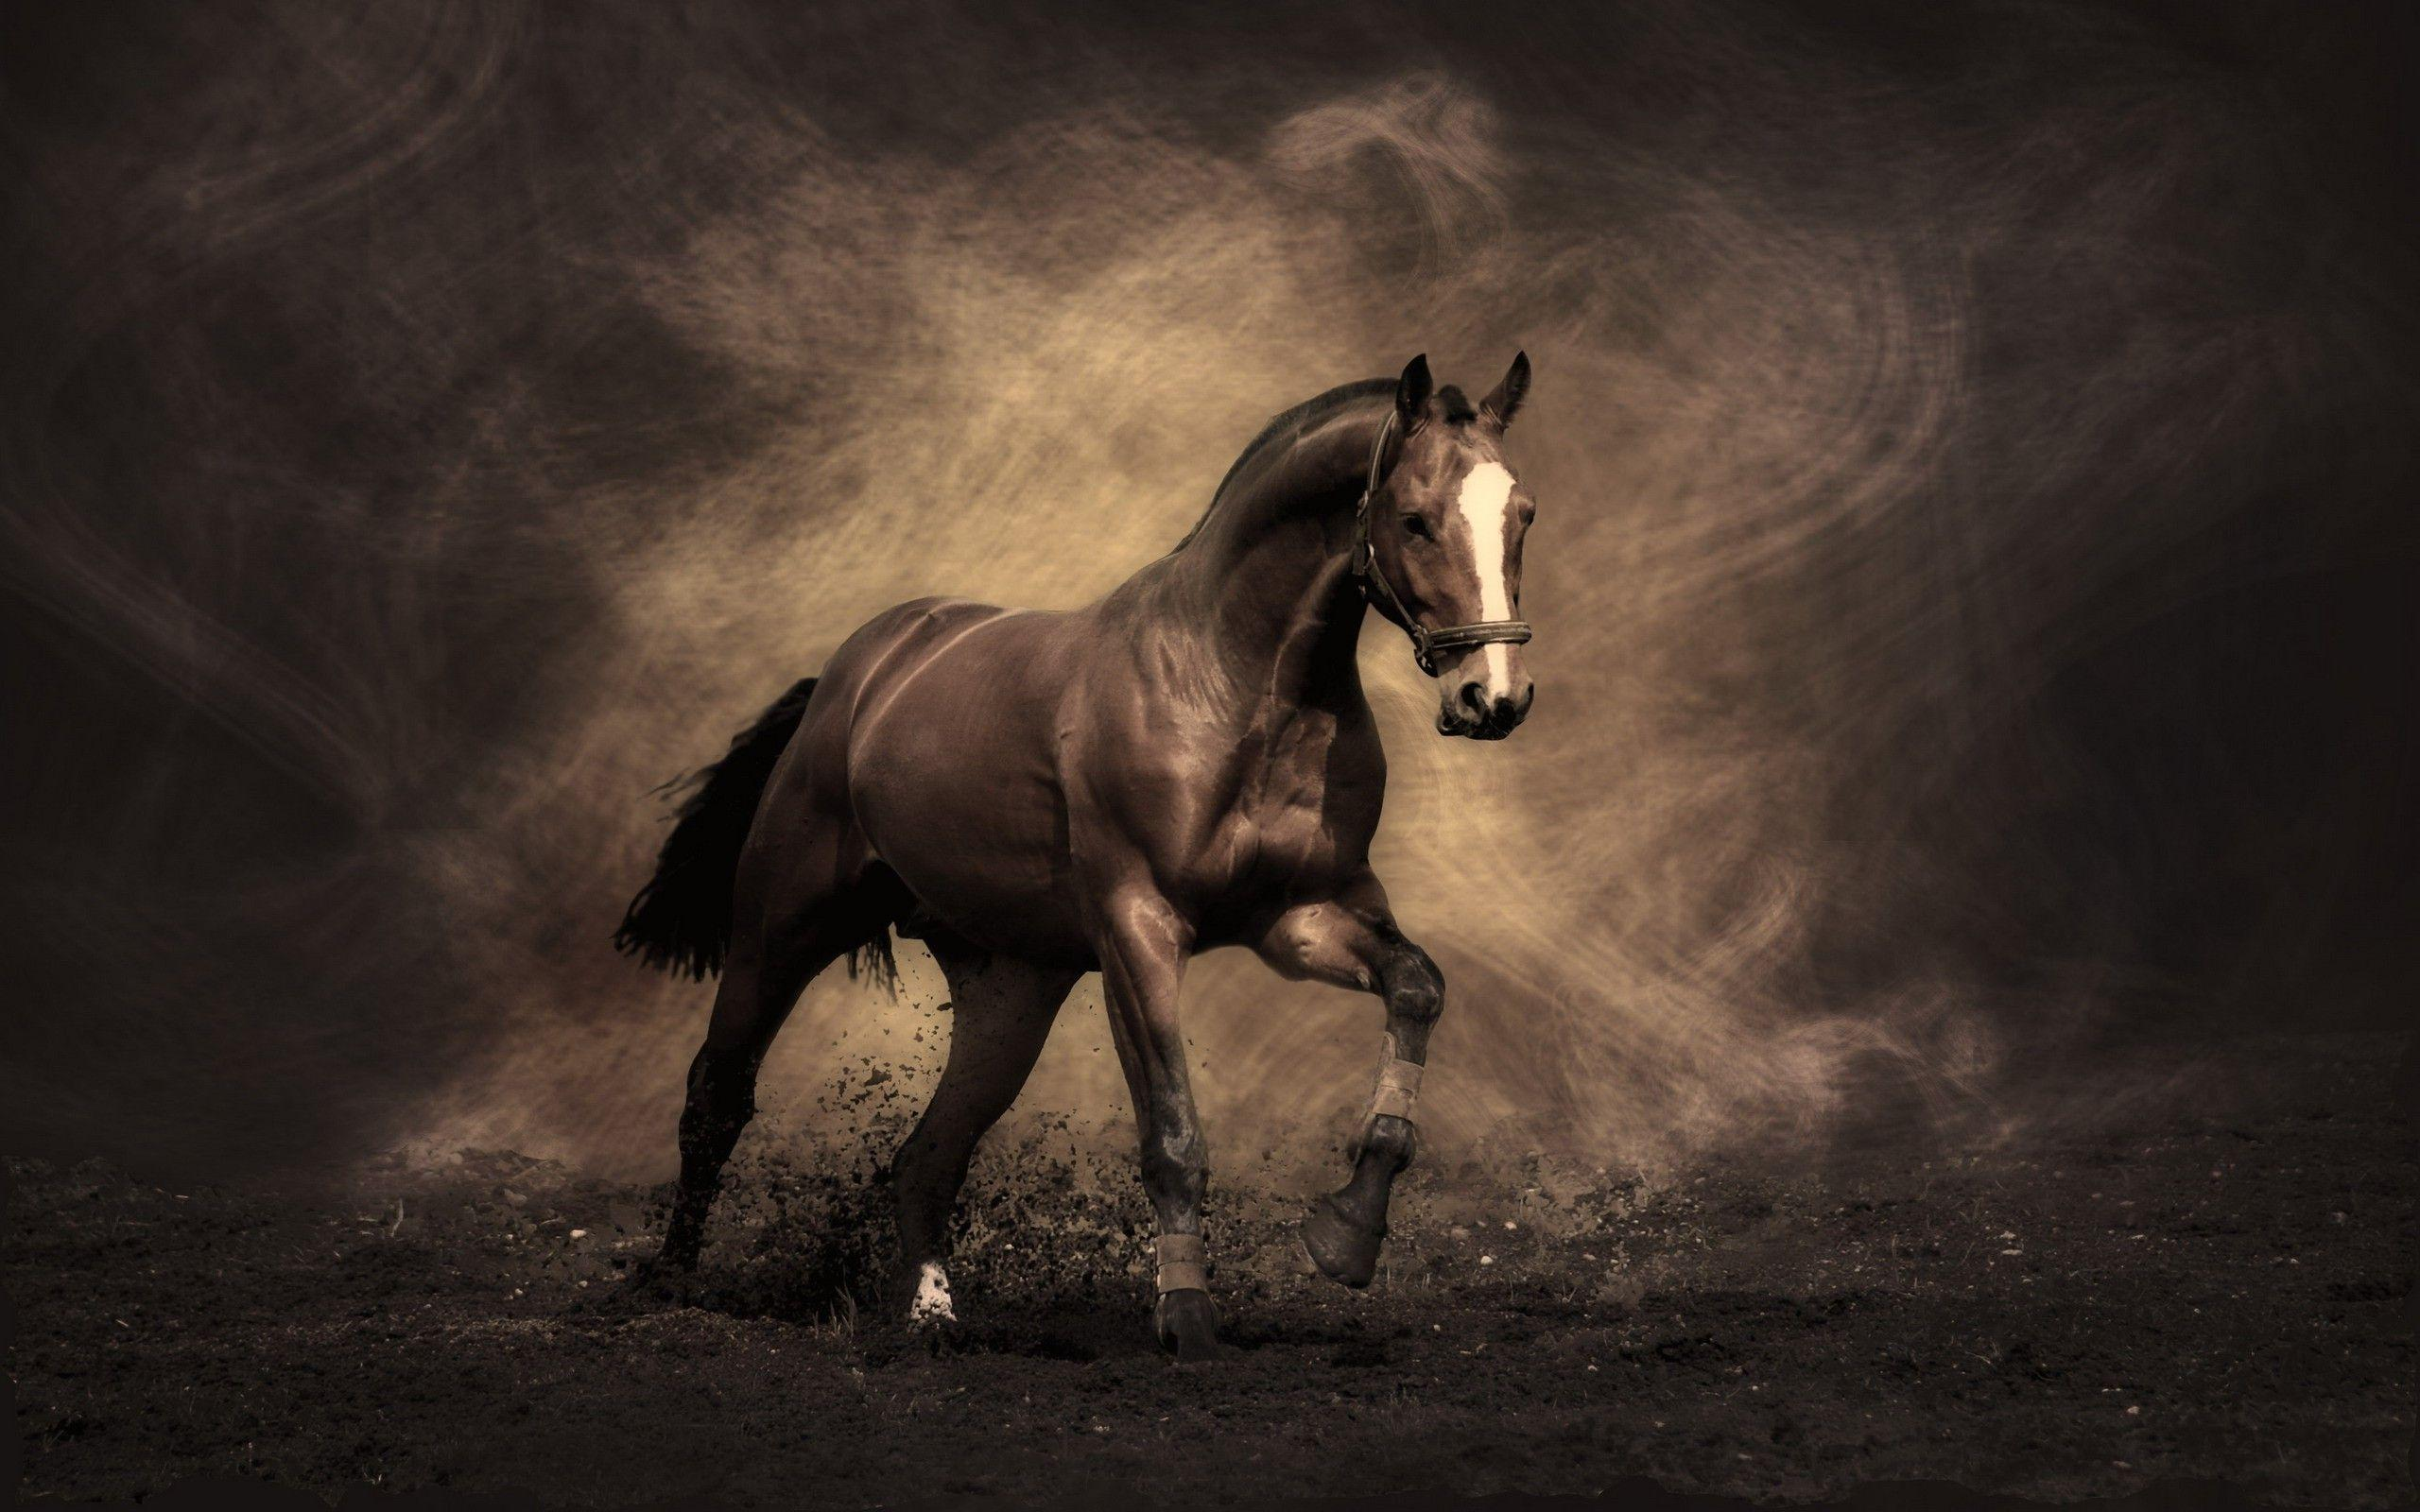 Horse Wallpapers - Full HD wallpaper search